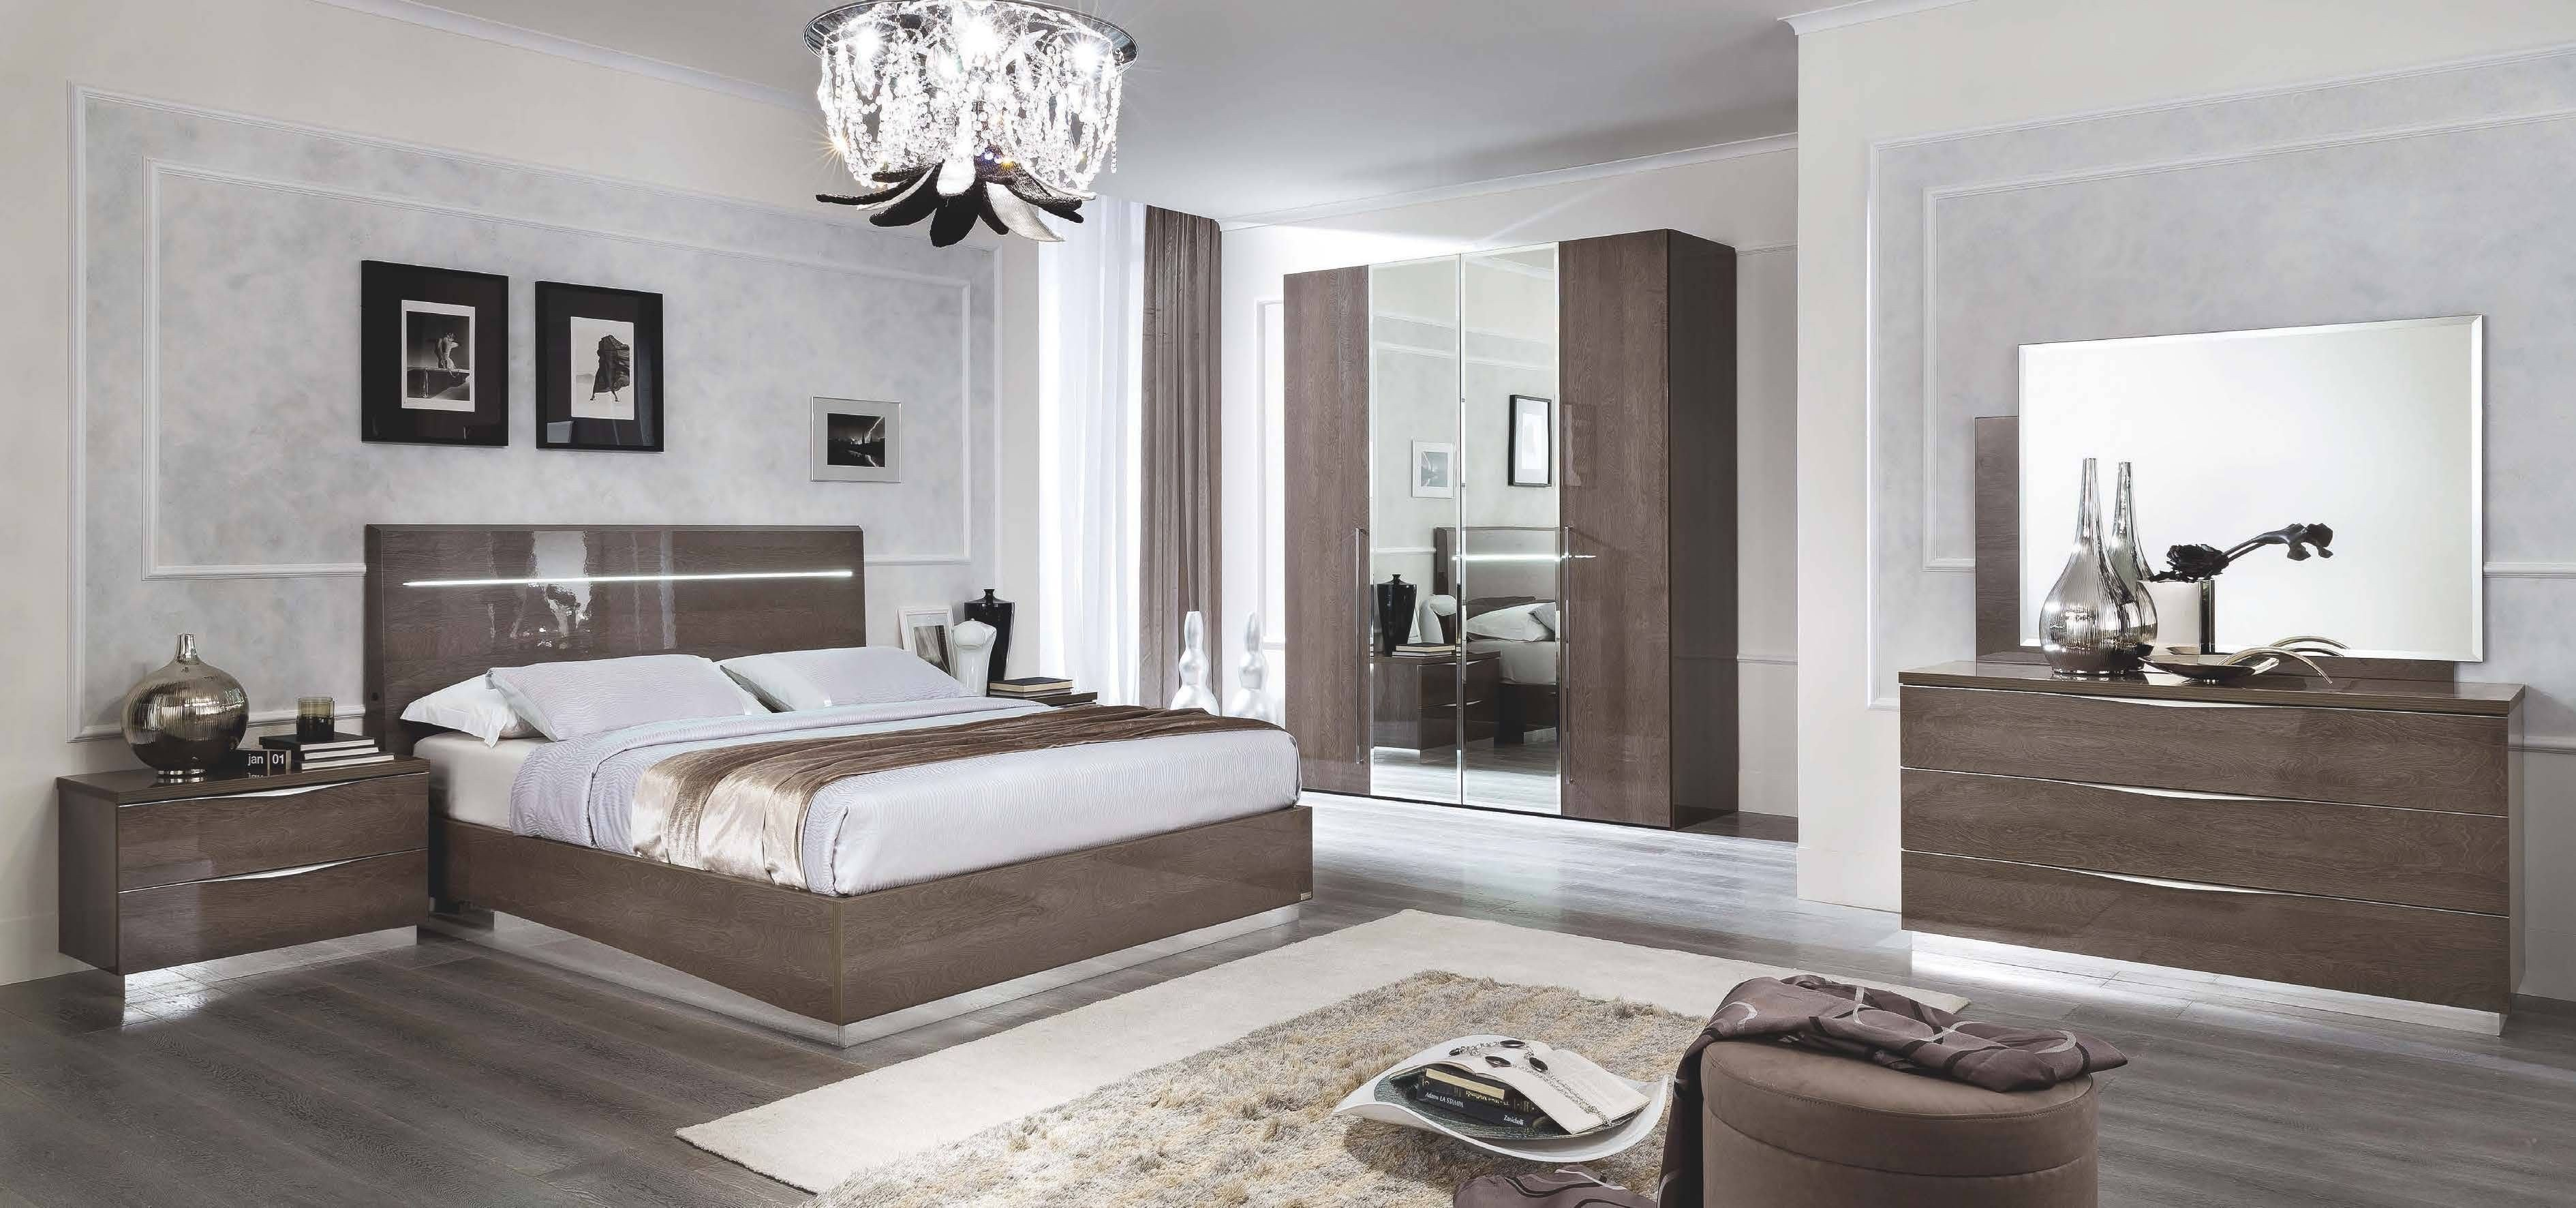 White Gloss Bedroom Furniture Unique 30 Brilliant Of Bedroom Furniture Master Bedroom